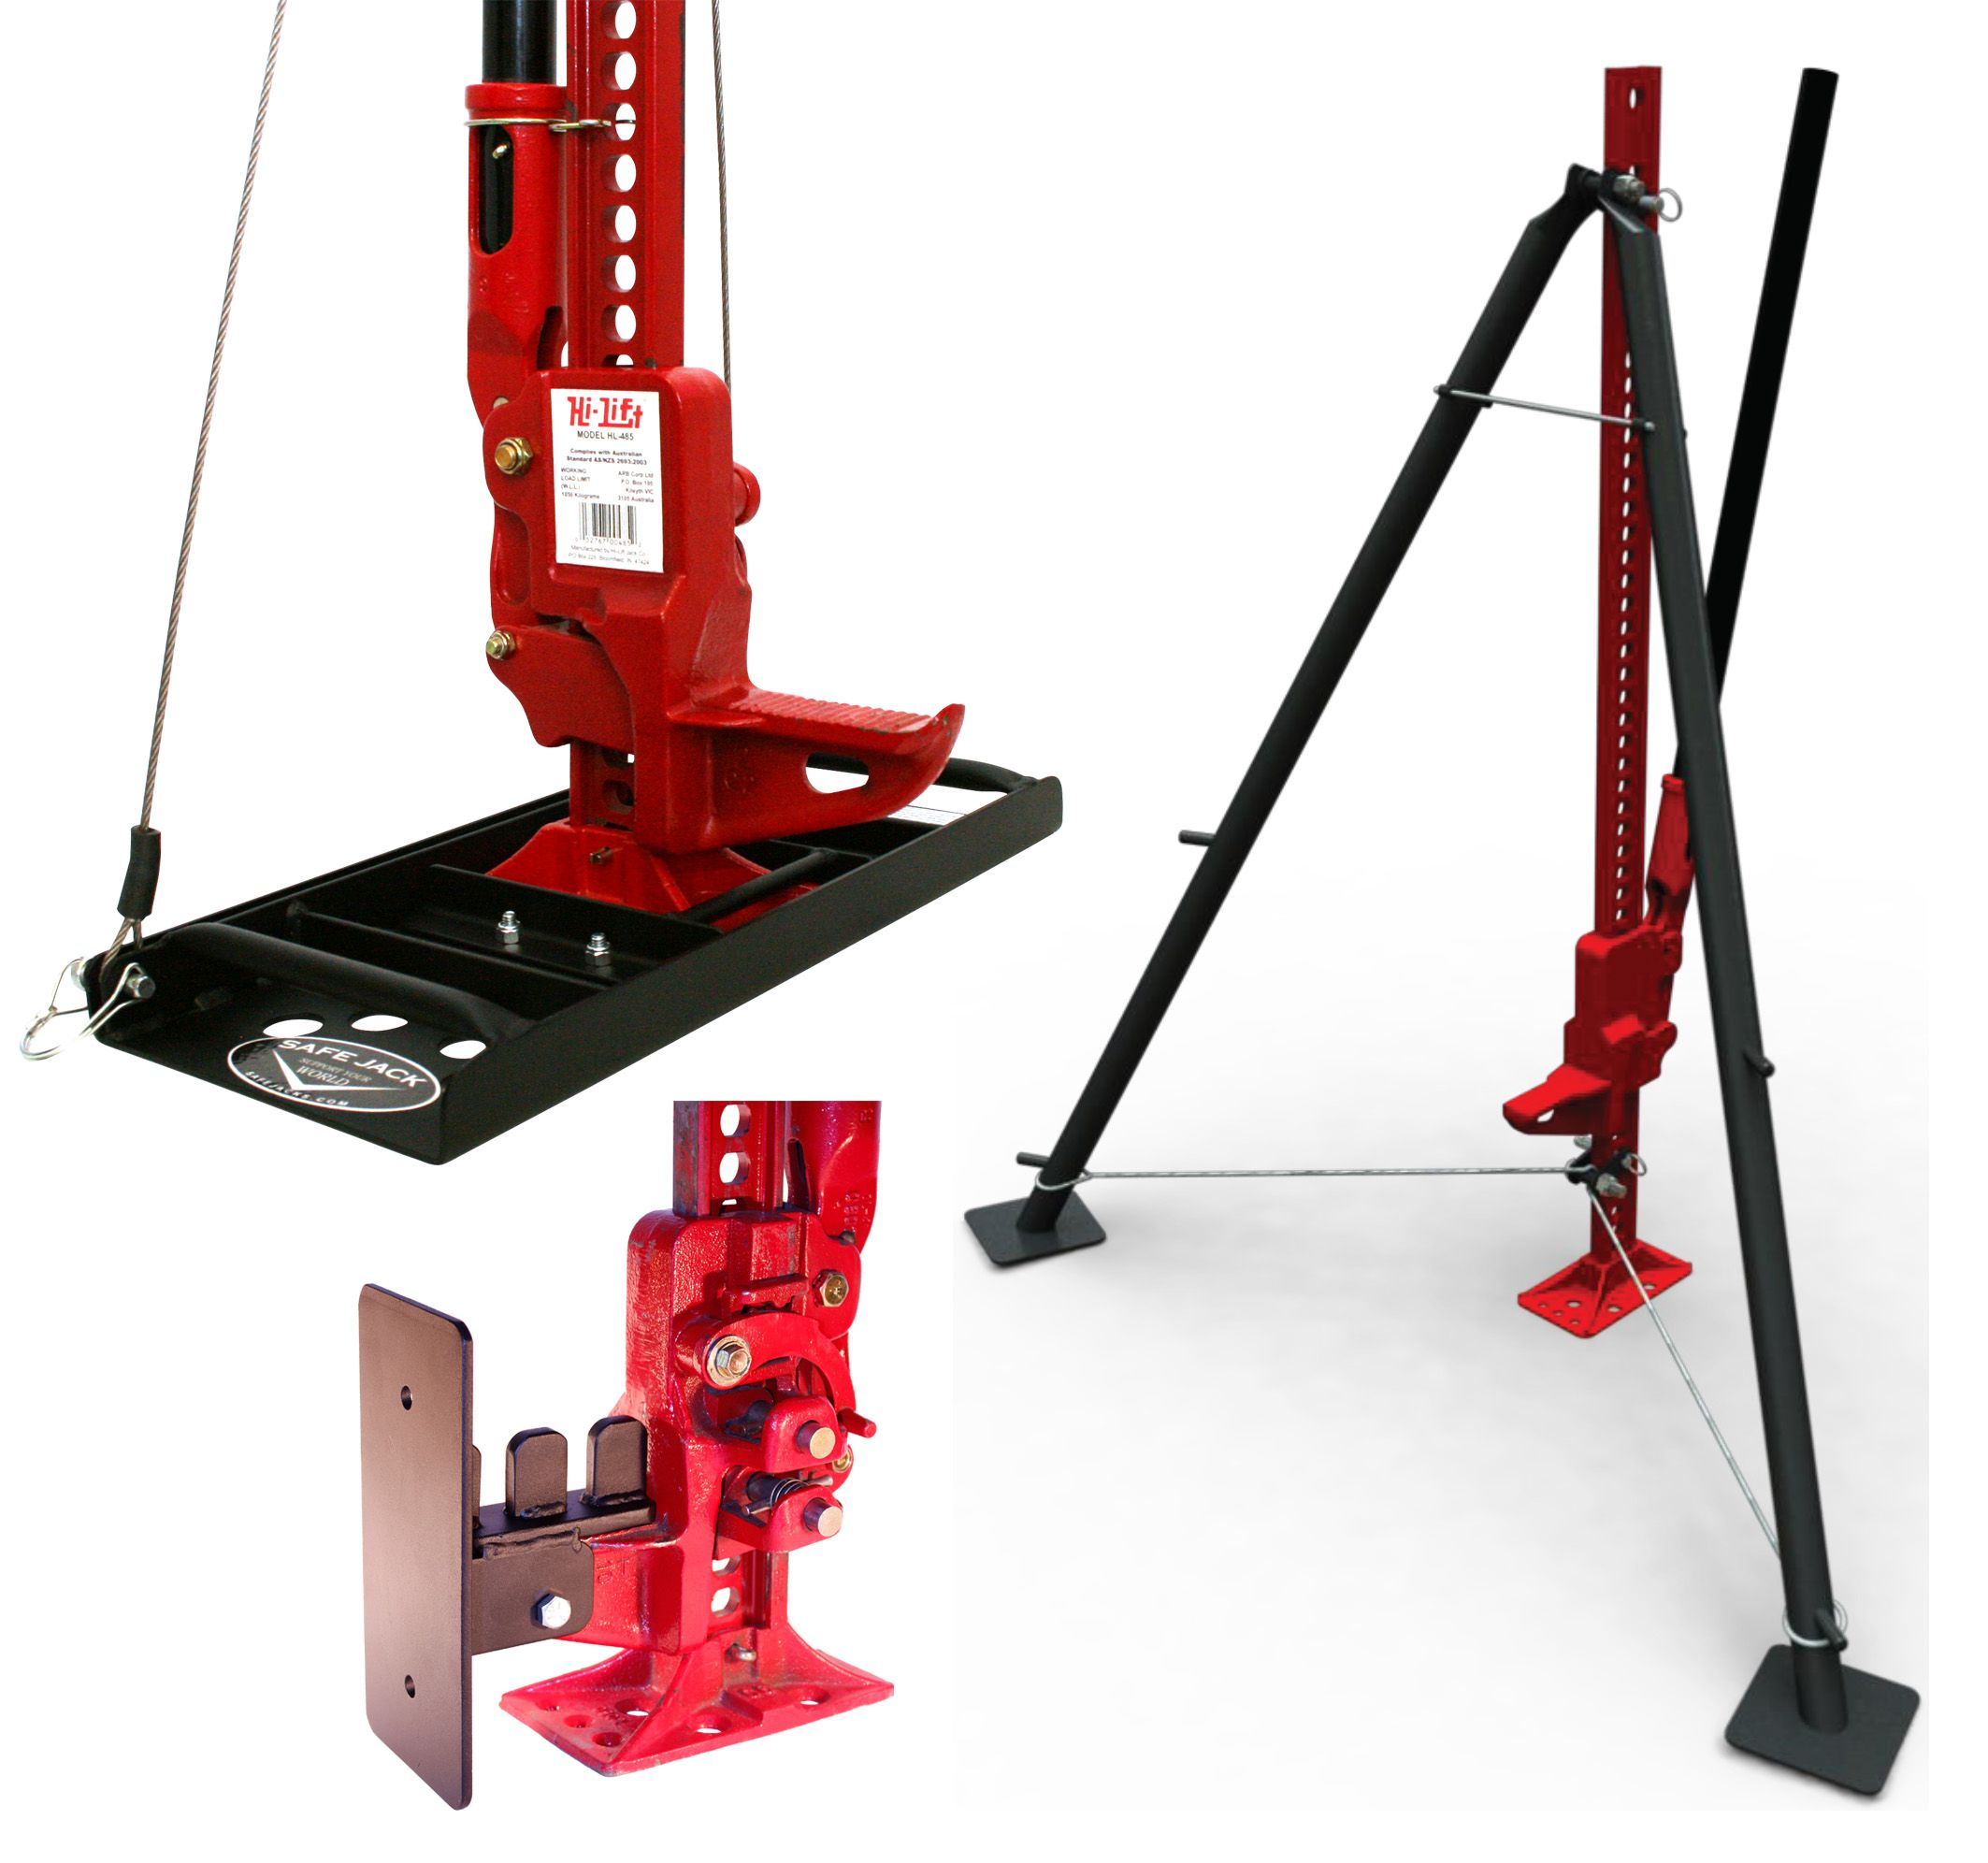 These Hi Lift Farm Jack Accessories Turn A Handy Jack Into An